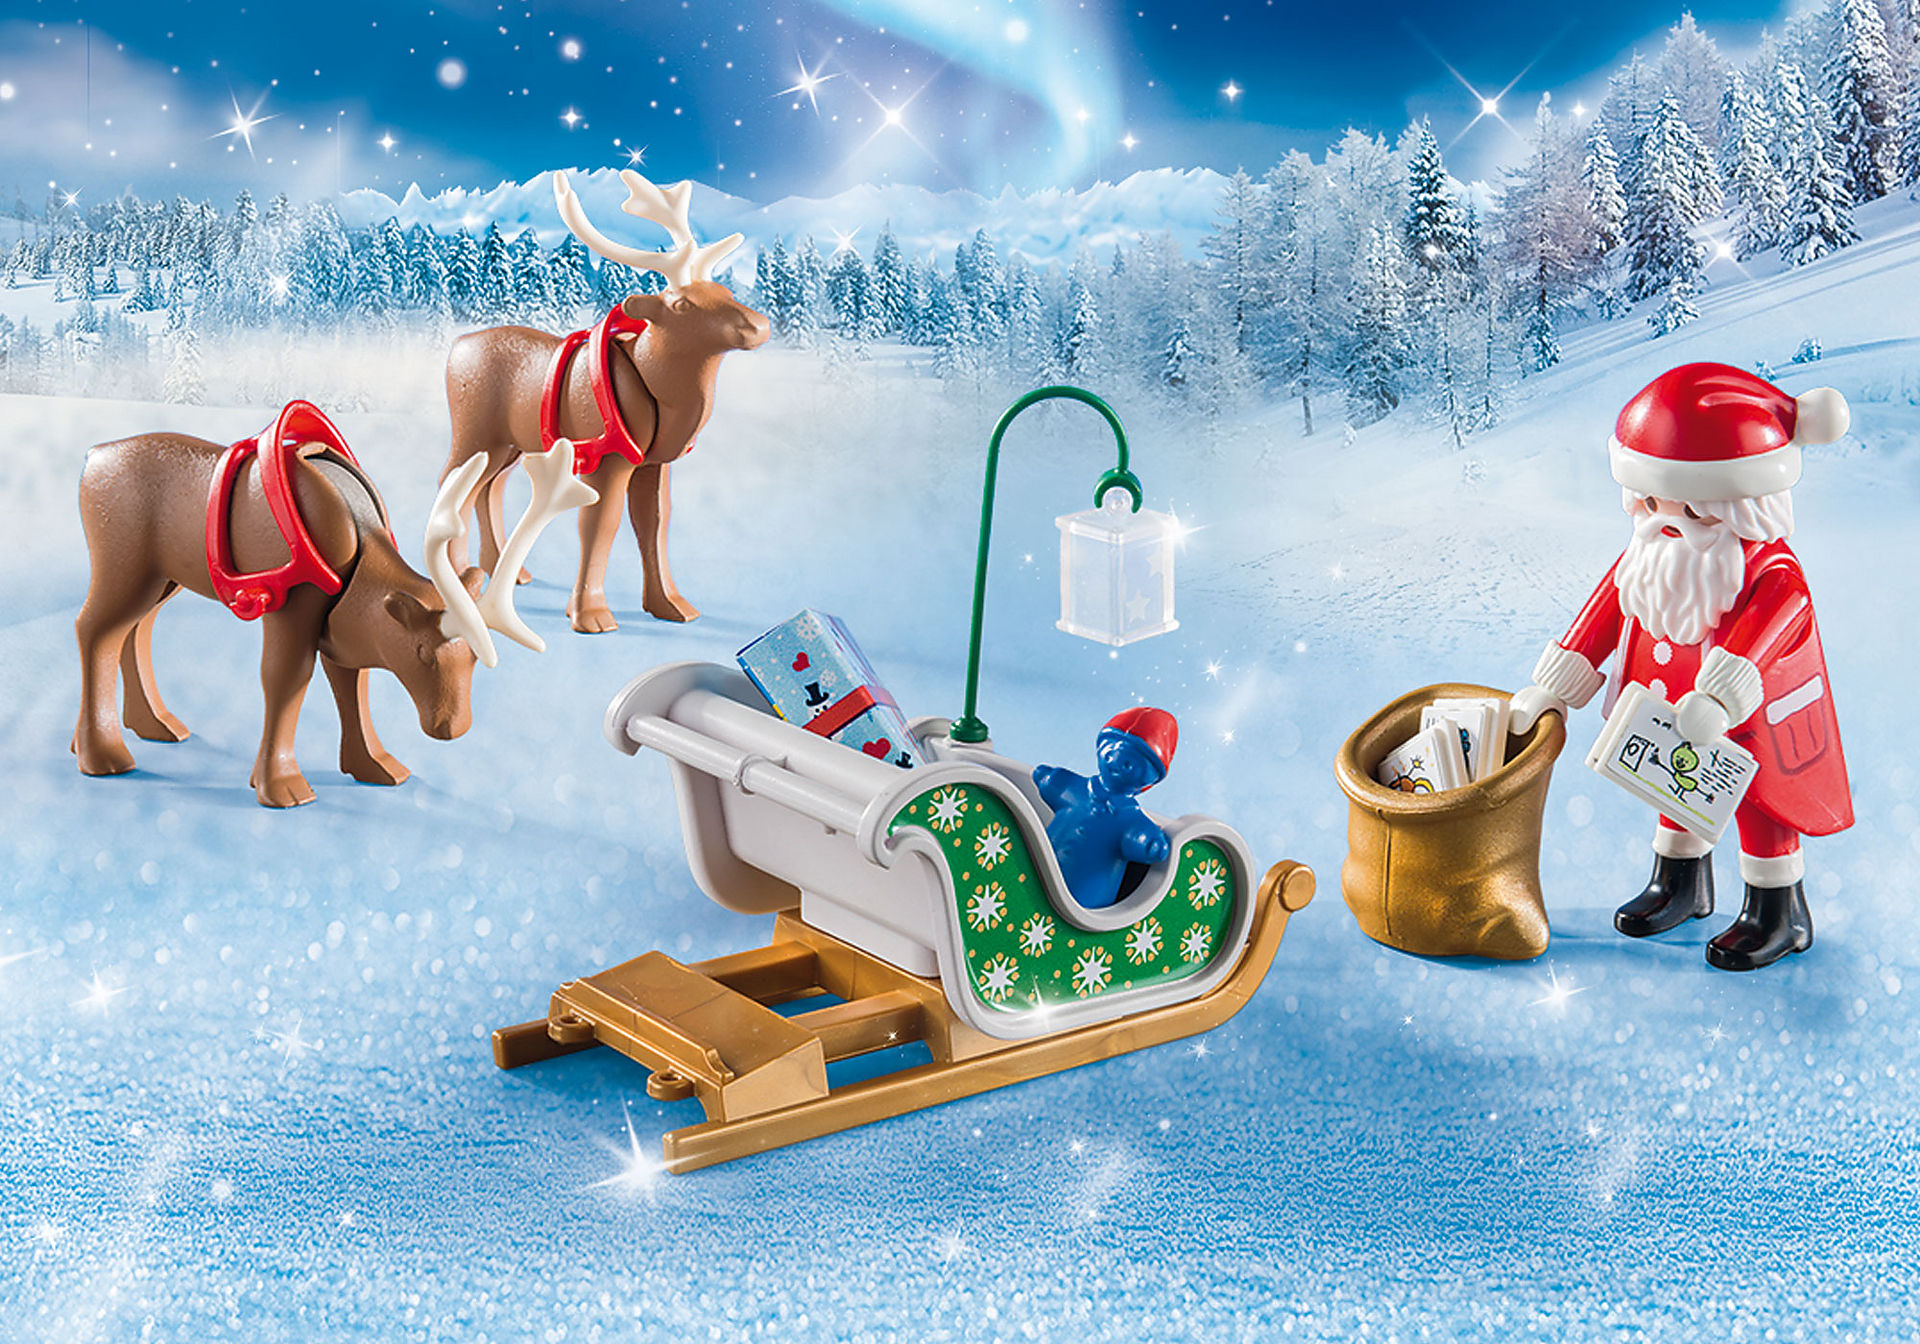 http://media.playmobil.com/i/playmobil/9496_product_extra1/Santa's Sleigh with Reindeer